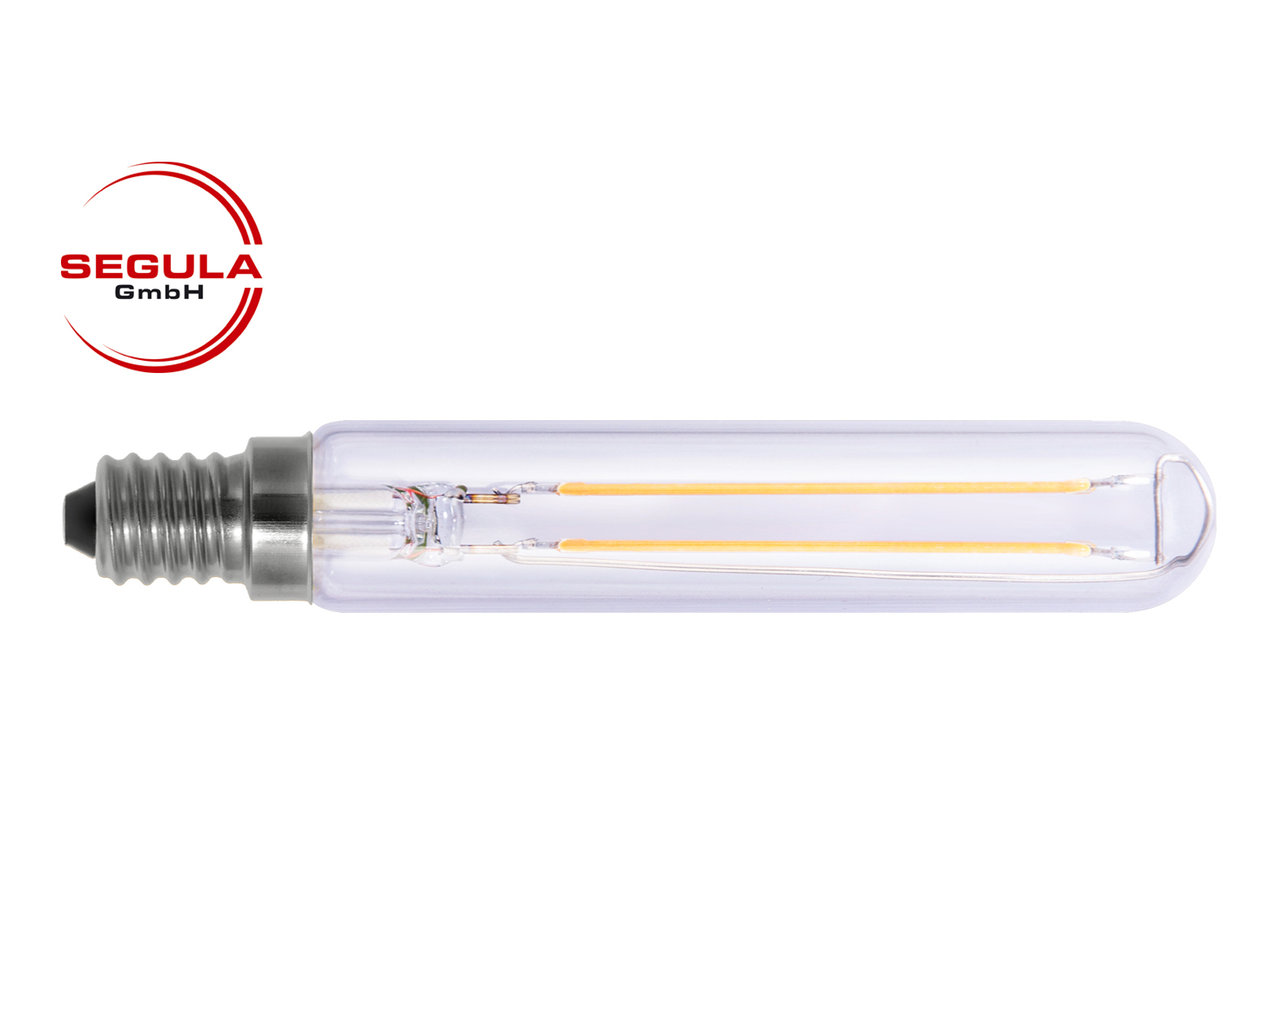 Led Dimmbar E14 Led Filament Tube Segula 50679 E14 2 7w Ca 25w 250lm 2600k Klar Dimmbar